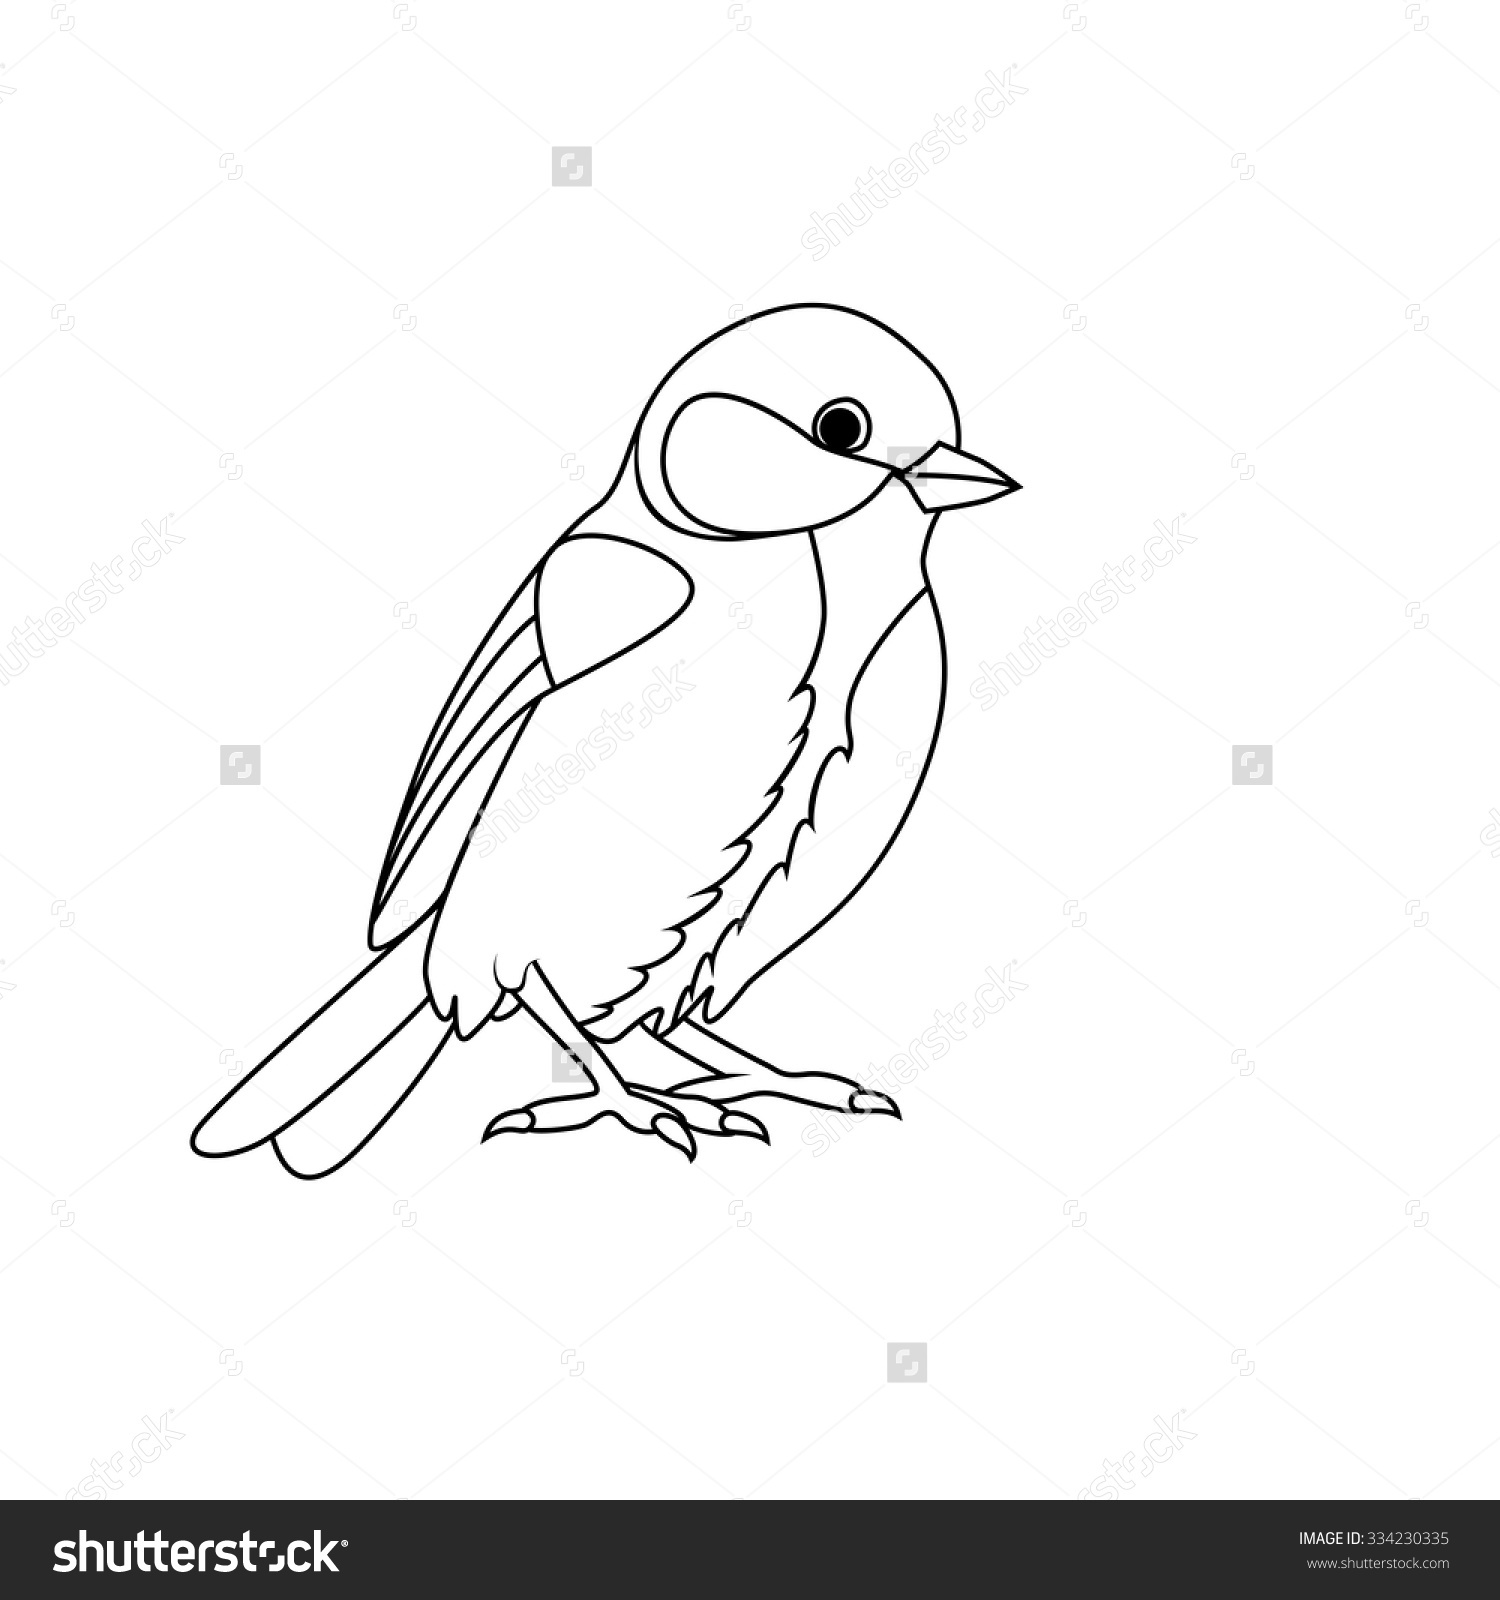 Titmouse coloring Download Titmouse coloring for free 2019